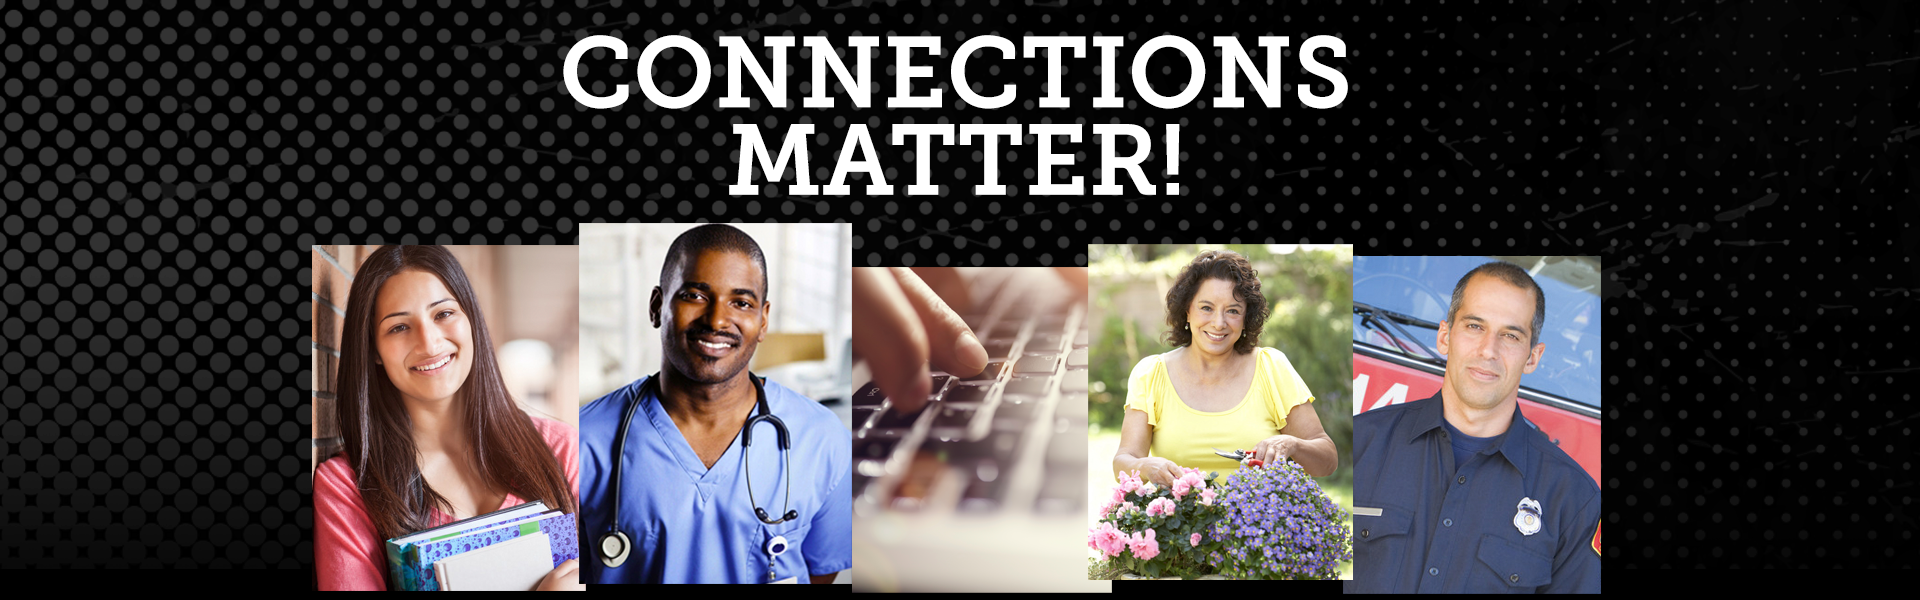 OneUnited Bank - Connections Matter